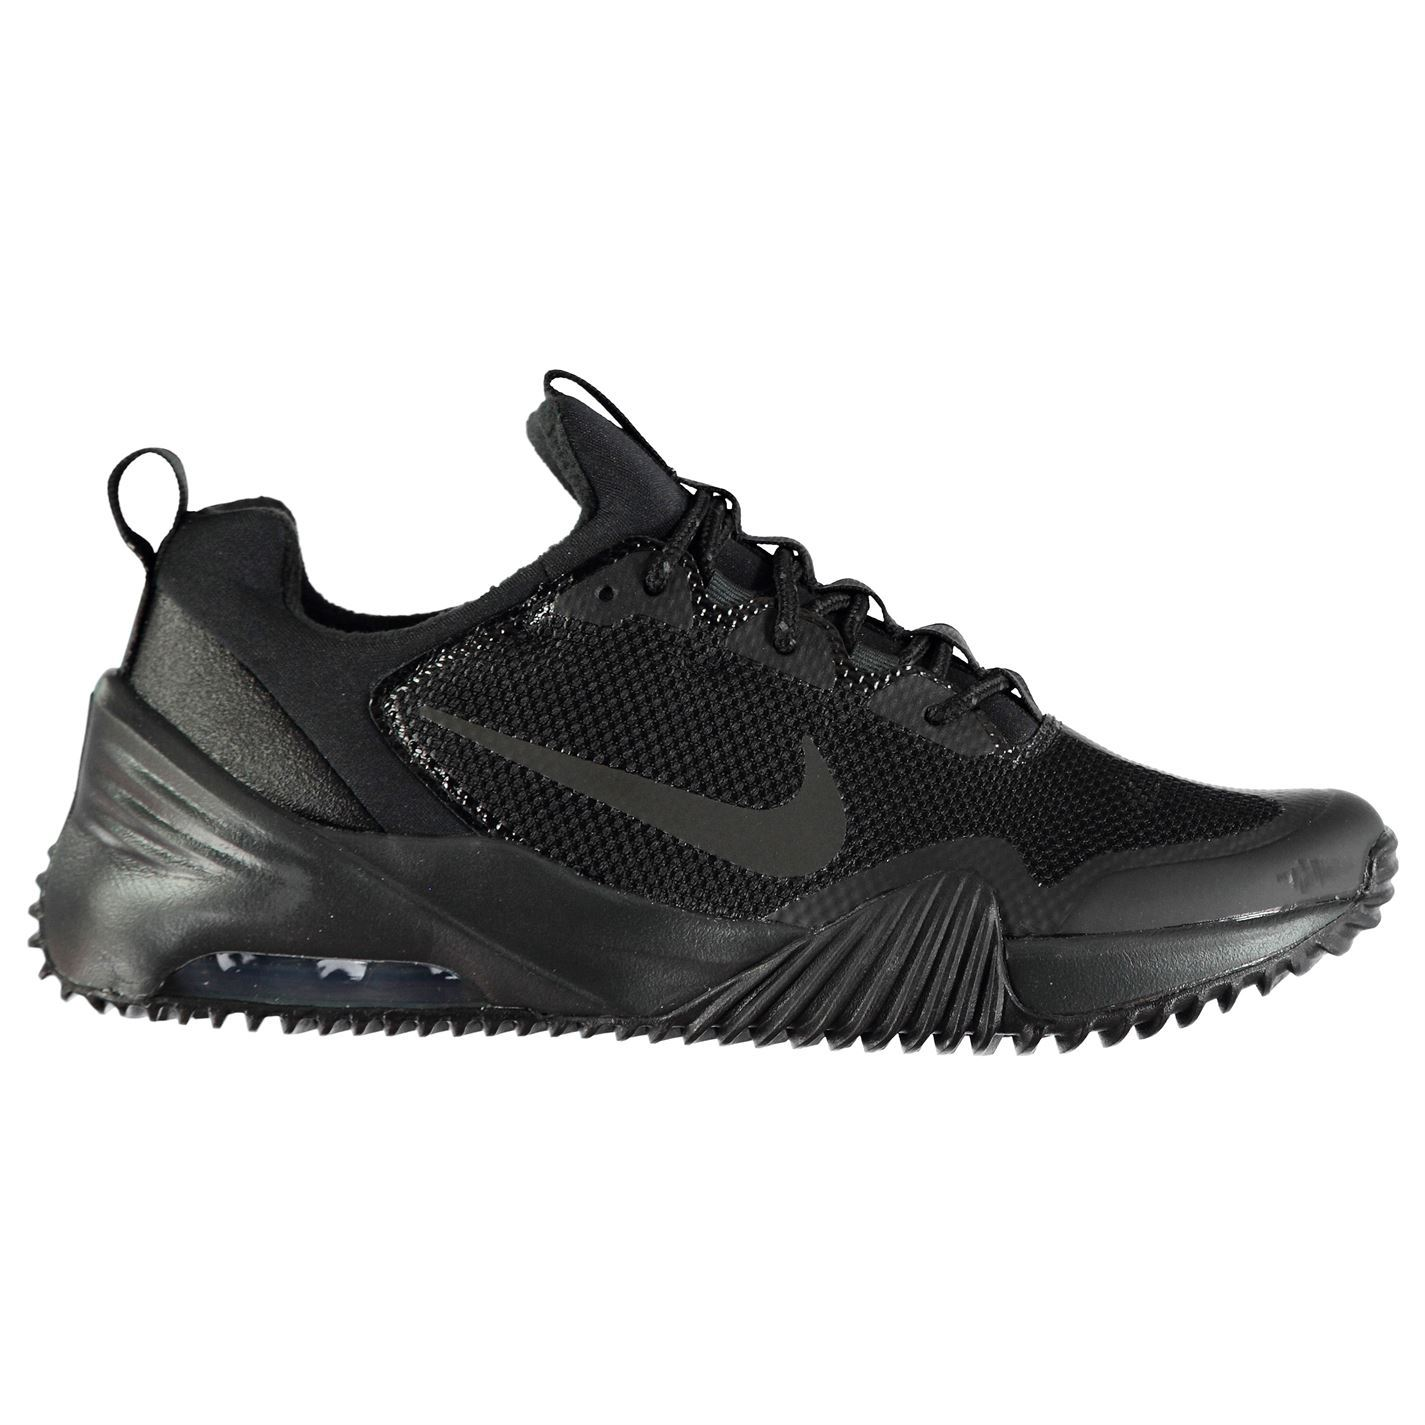 reputable site 55f4b 5f8c6 ... Nike Air Max Grigora Trainers Mens Black Athletic Sneakers Shoes ...